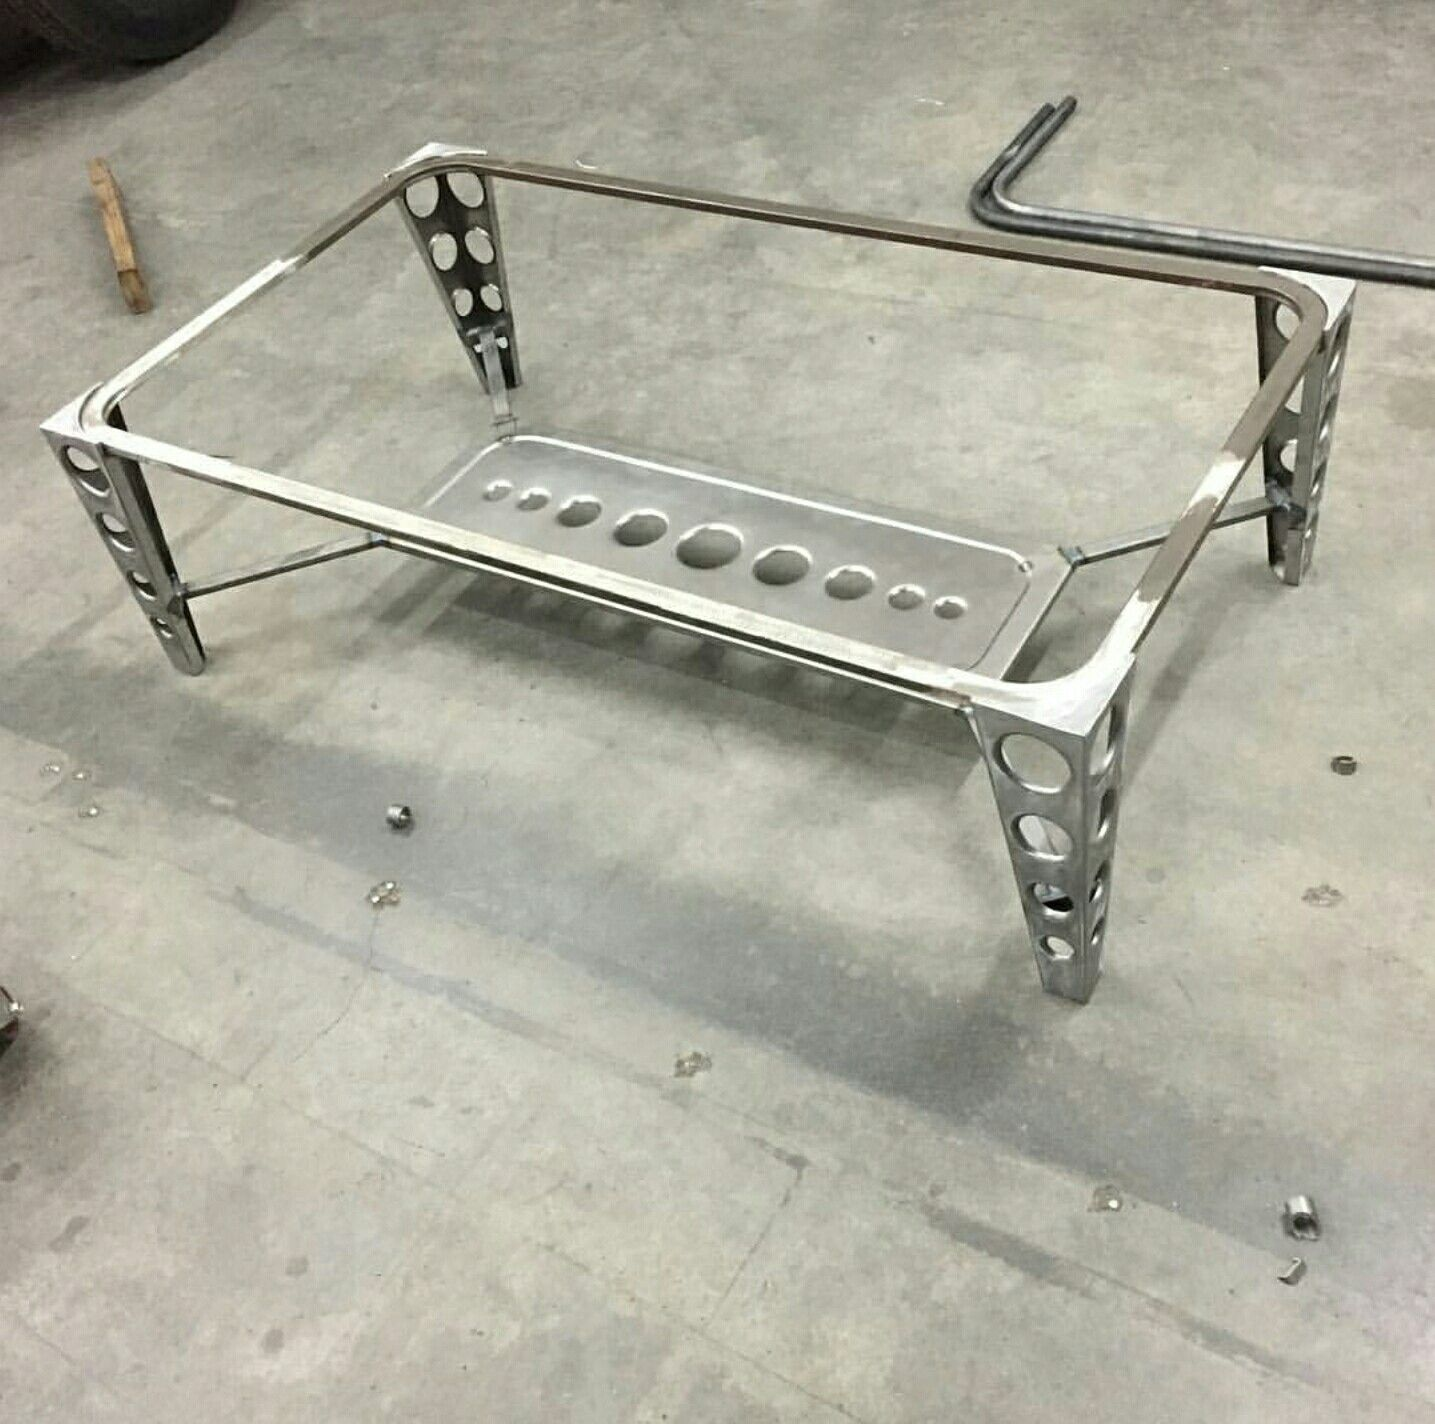 Bad ass coffee table furniture ideas pinterest table